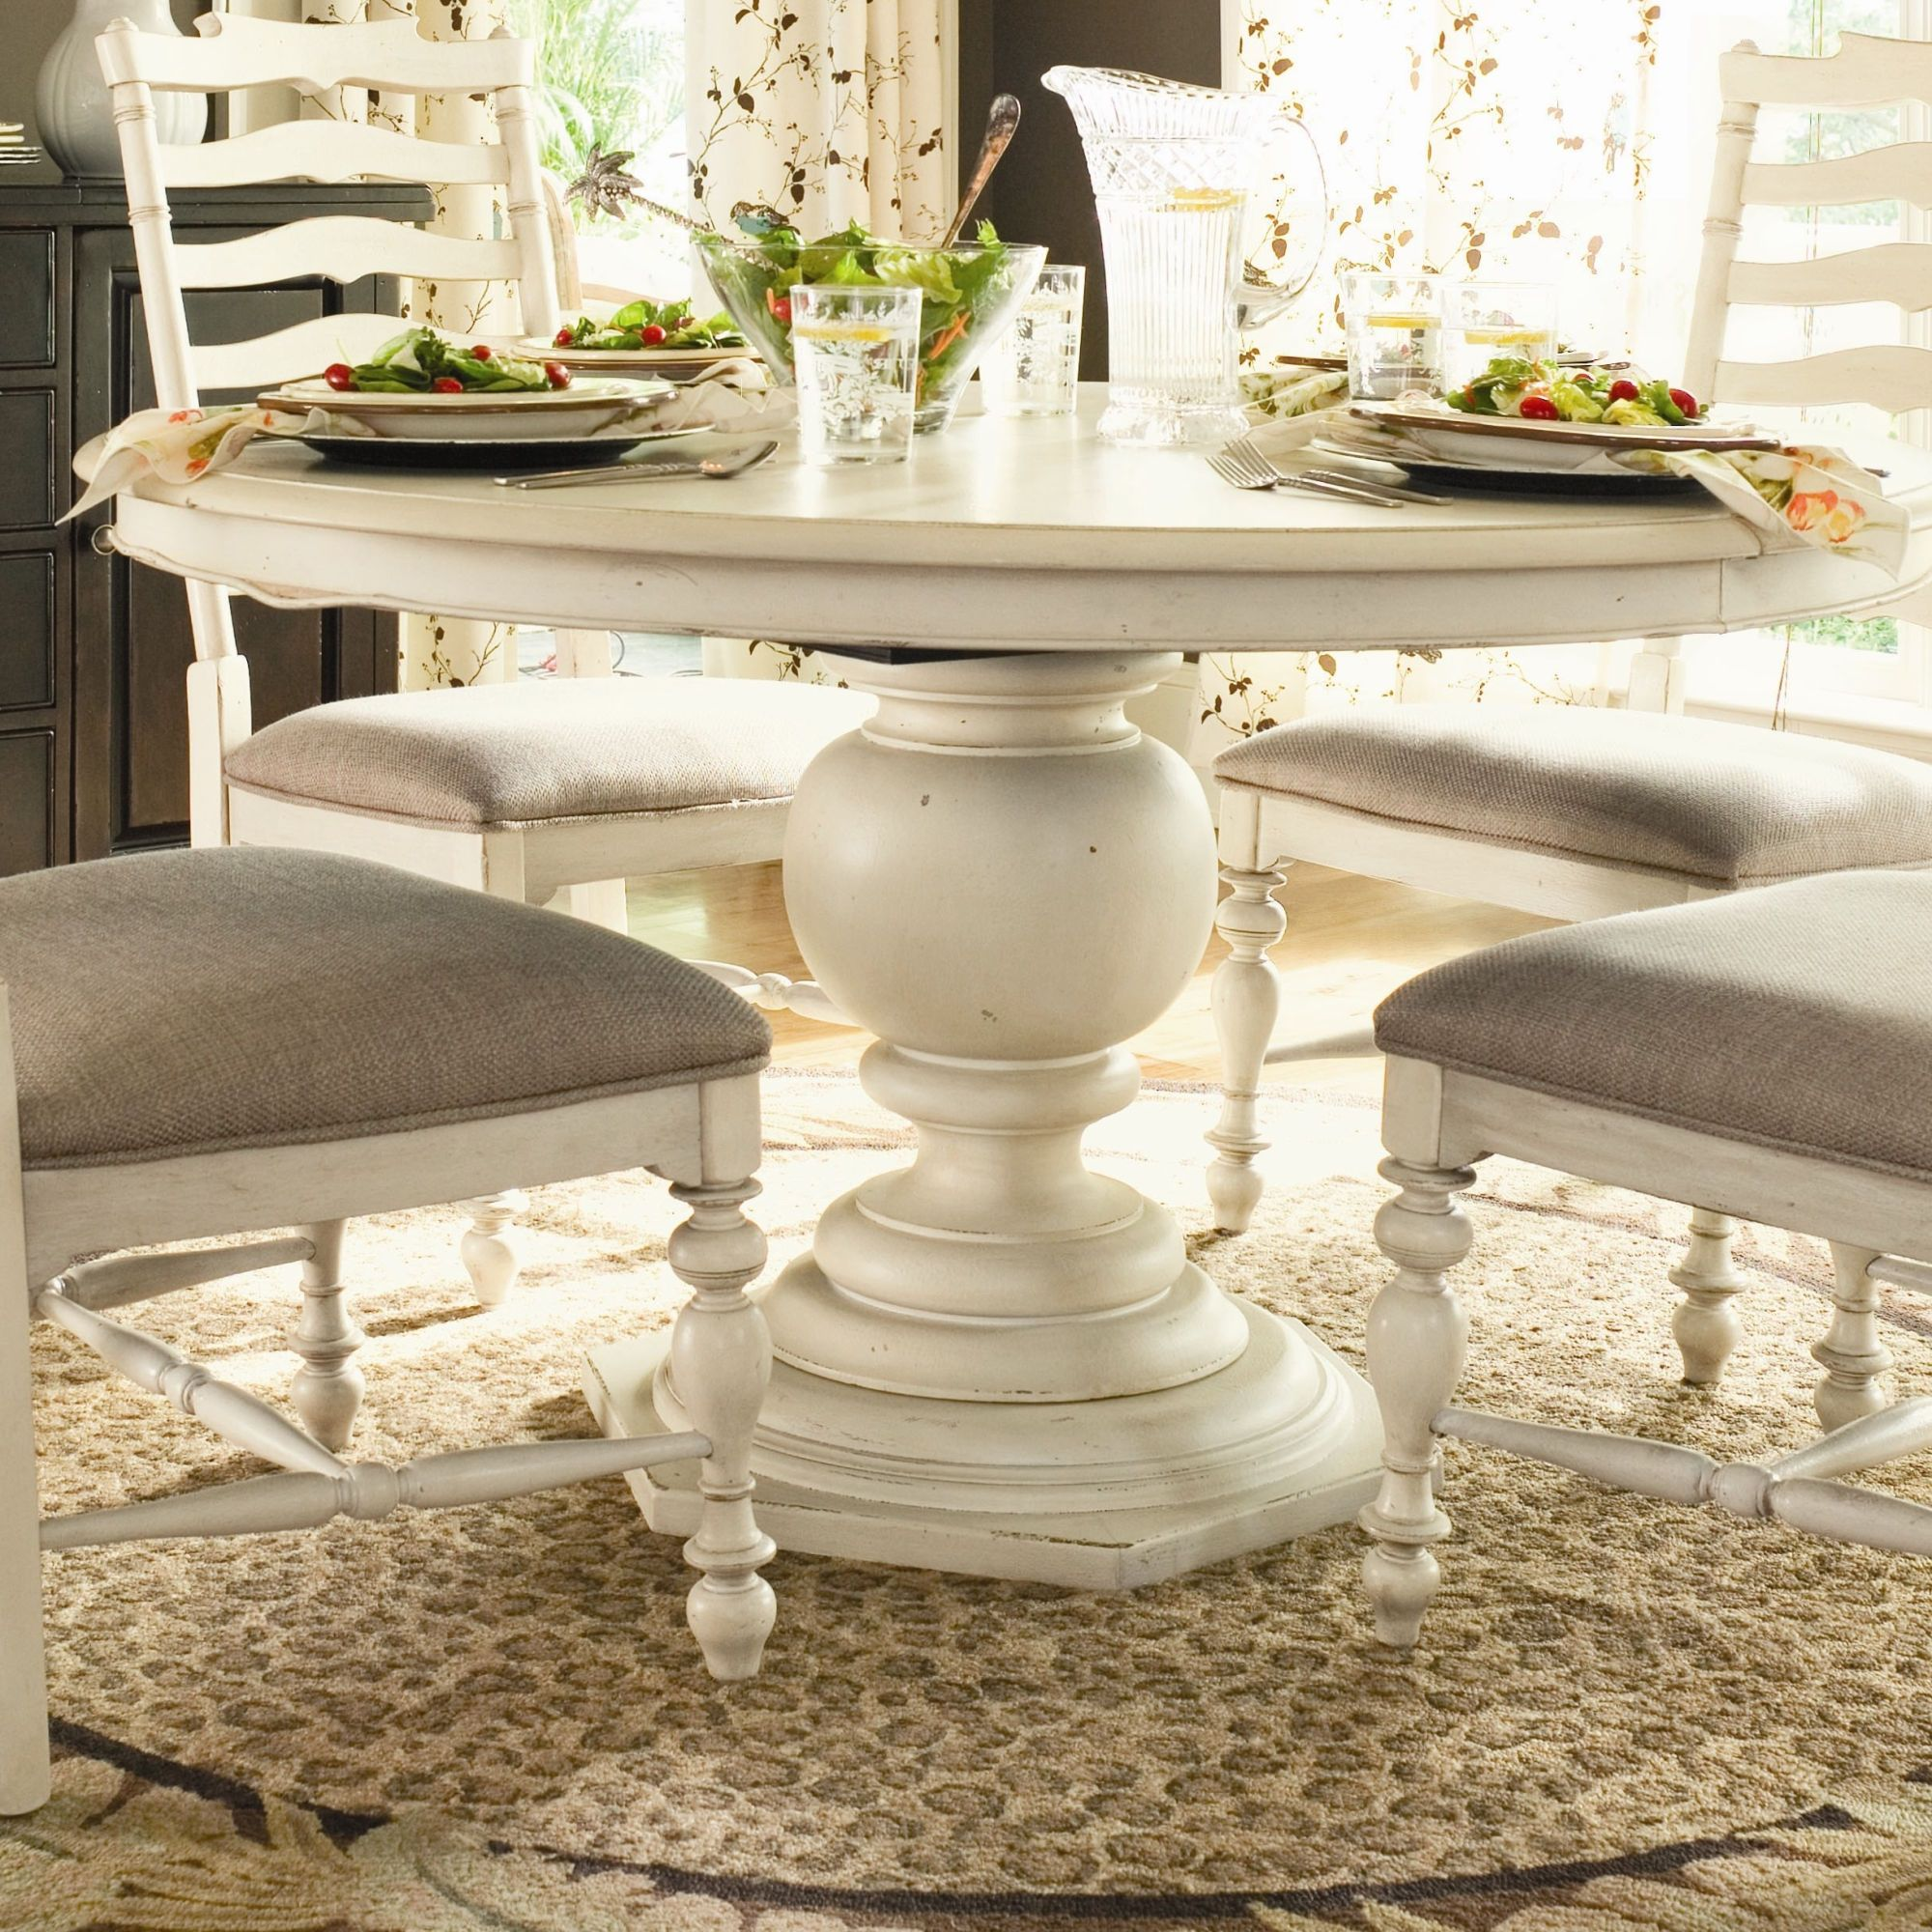 Stunning Picture For Choosing The Perfect Kitchen Rugs - White pedestal table with leaf